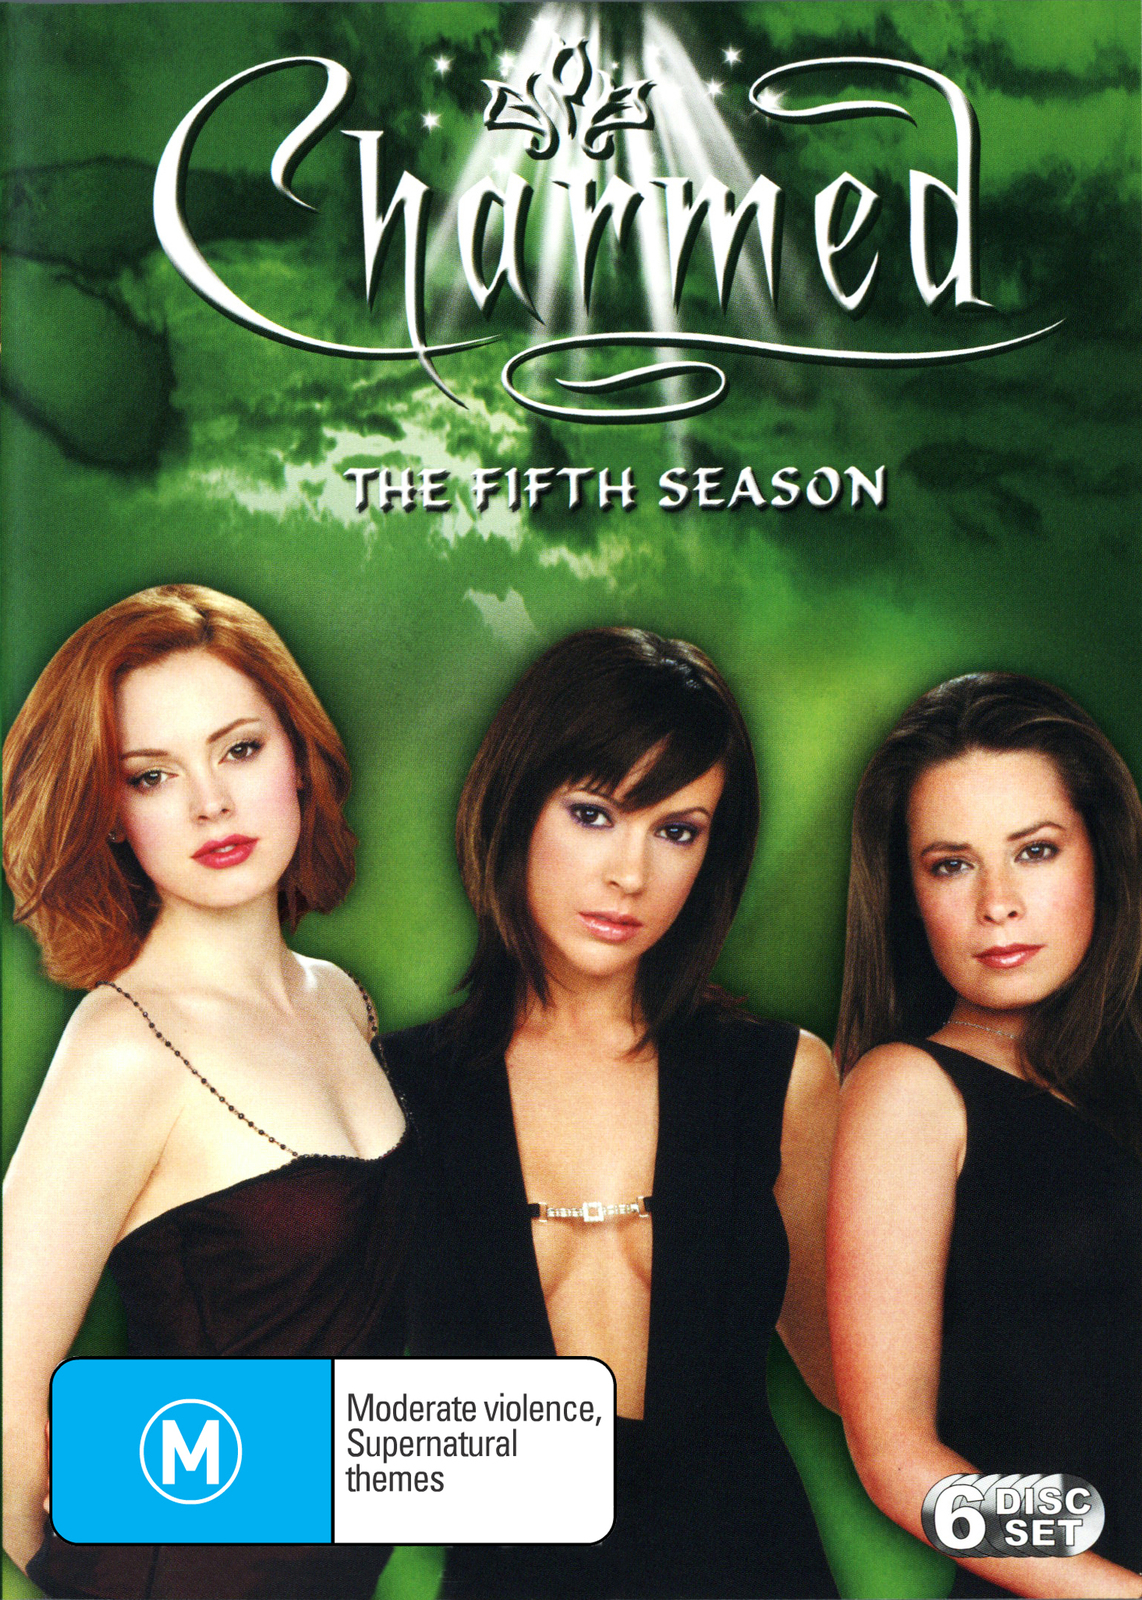 Charmed - Complete 5th Season (6 Disc) on DVD image